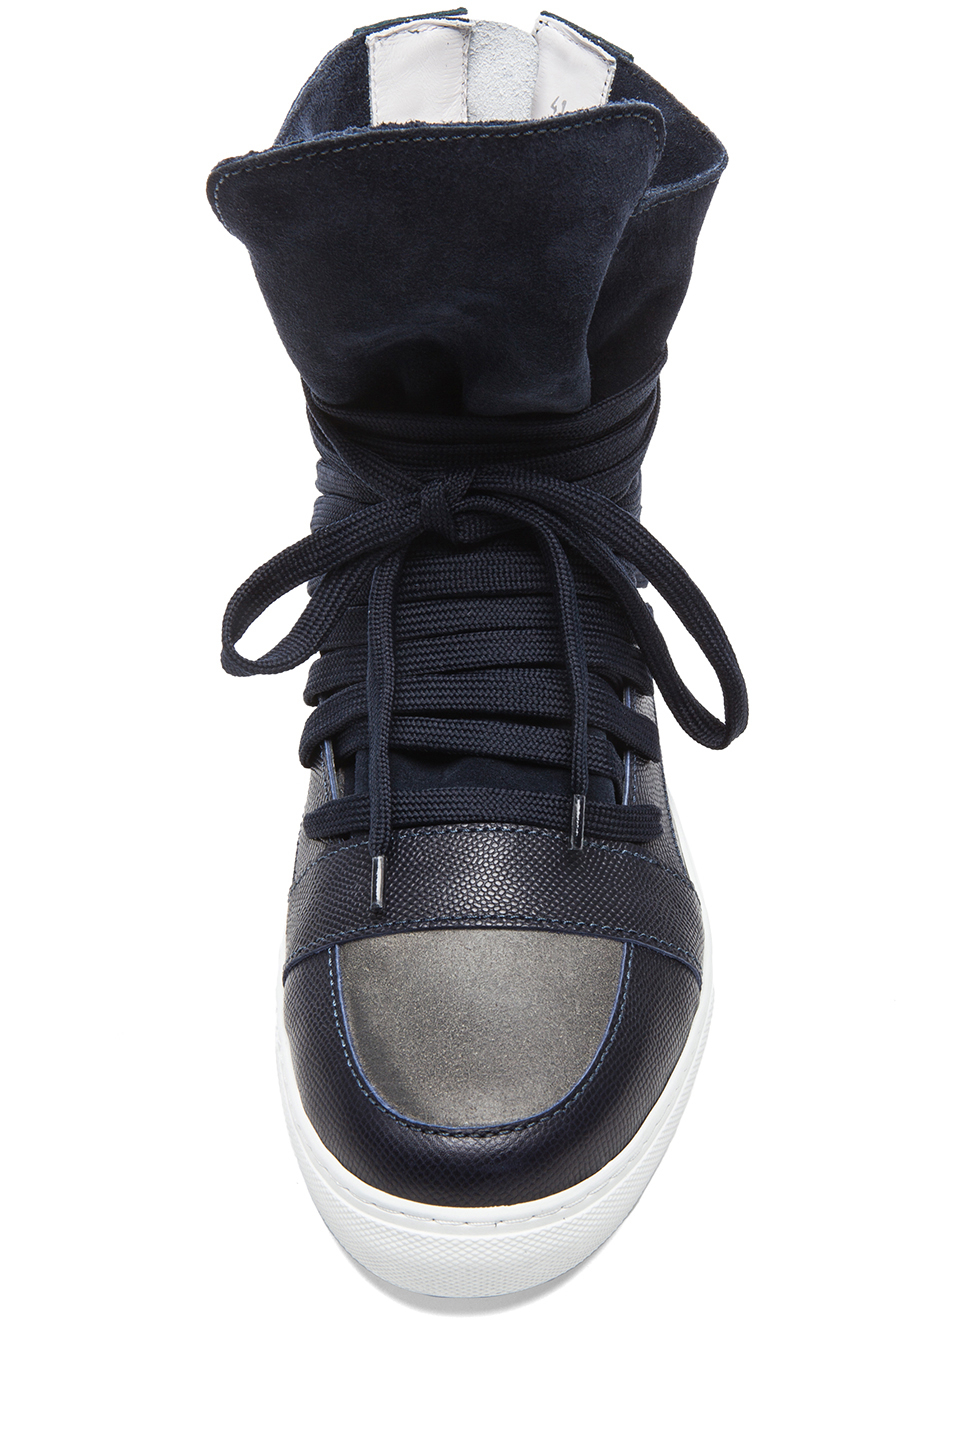 Kris Van Assche Multi Lace Shoes